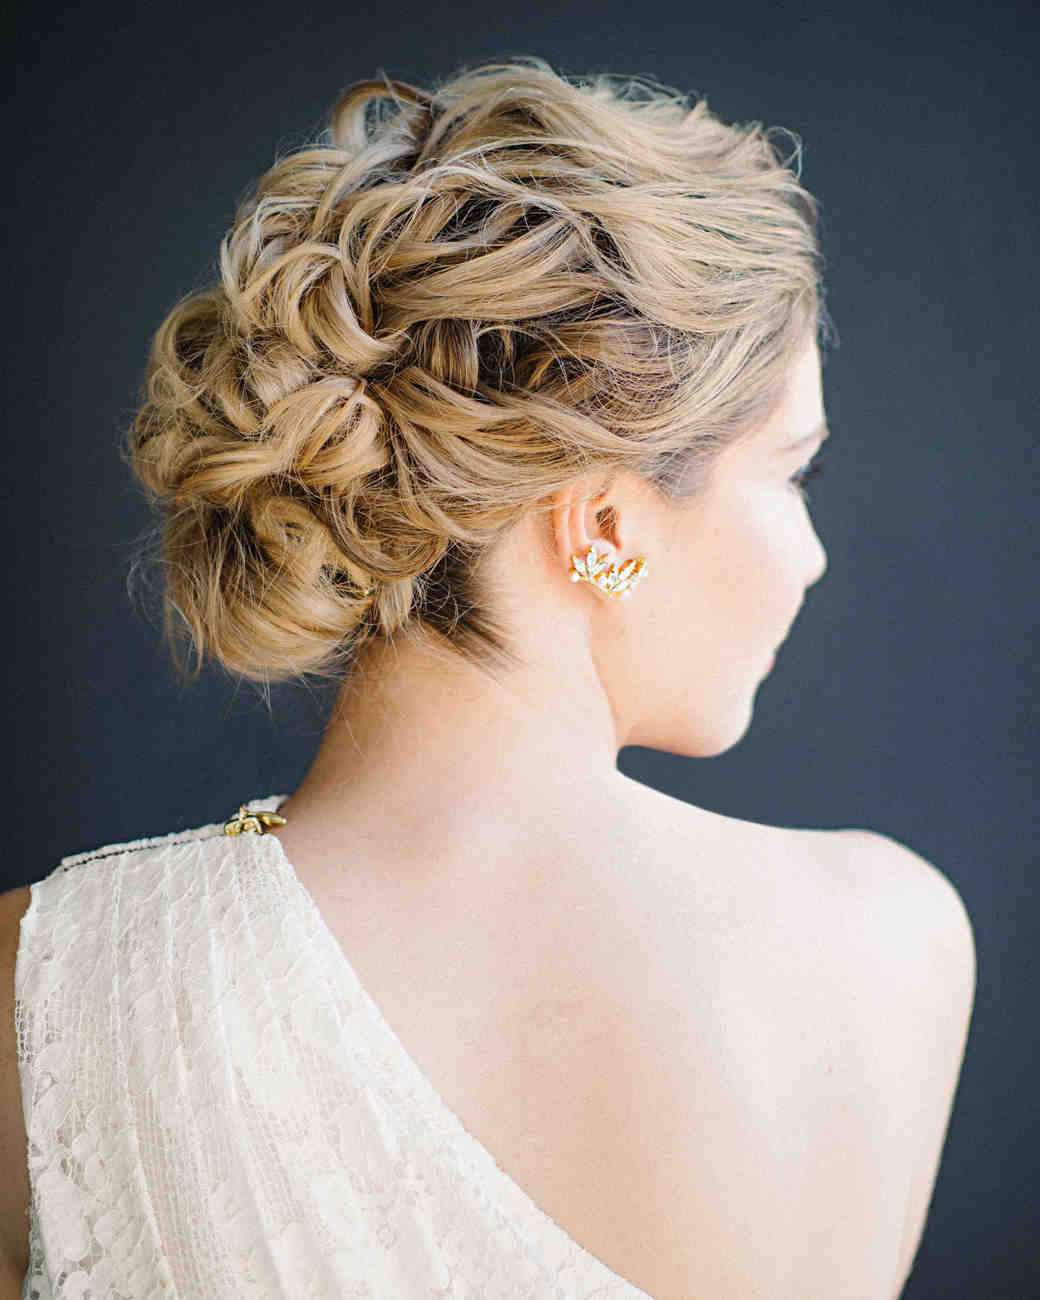 37 Pretty Wedding Hairstyles for Brides with Long Hair ... - photo #30